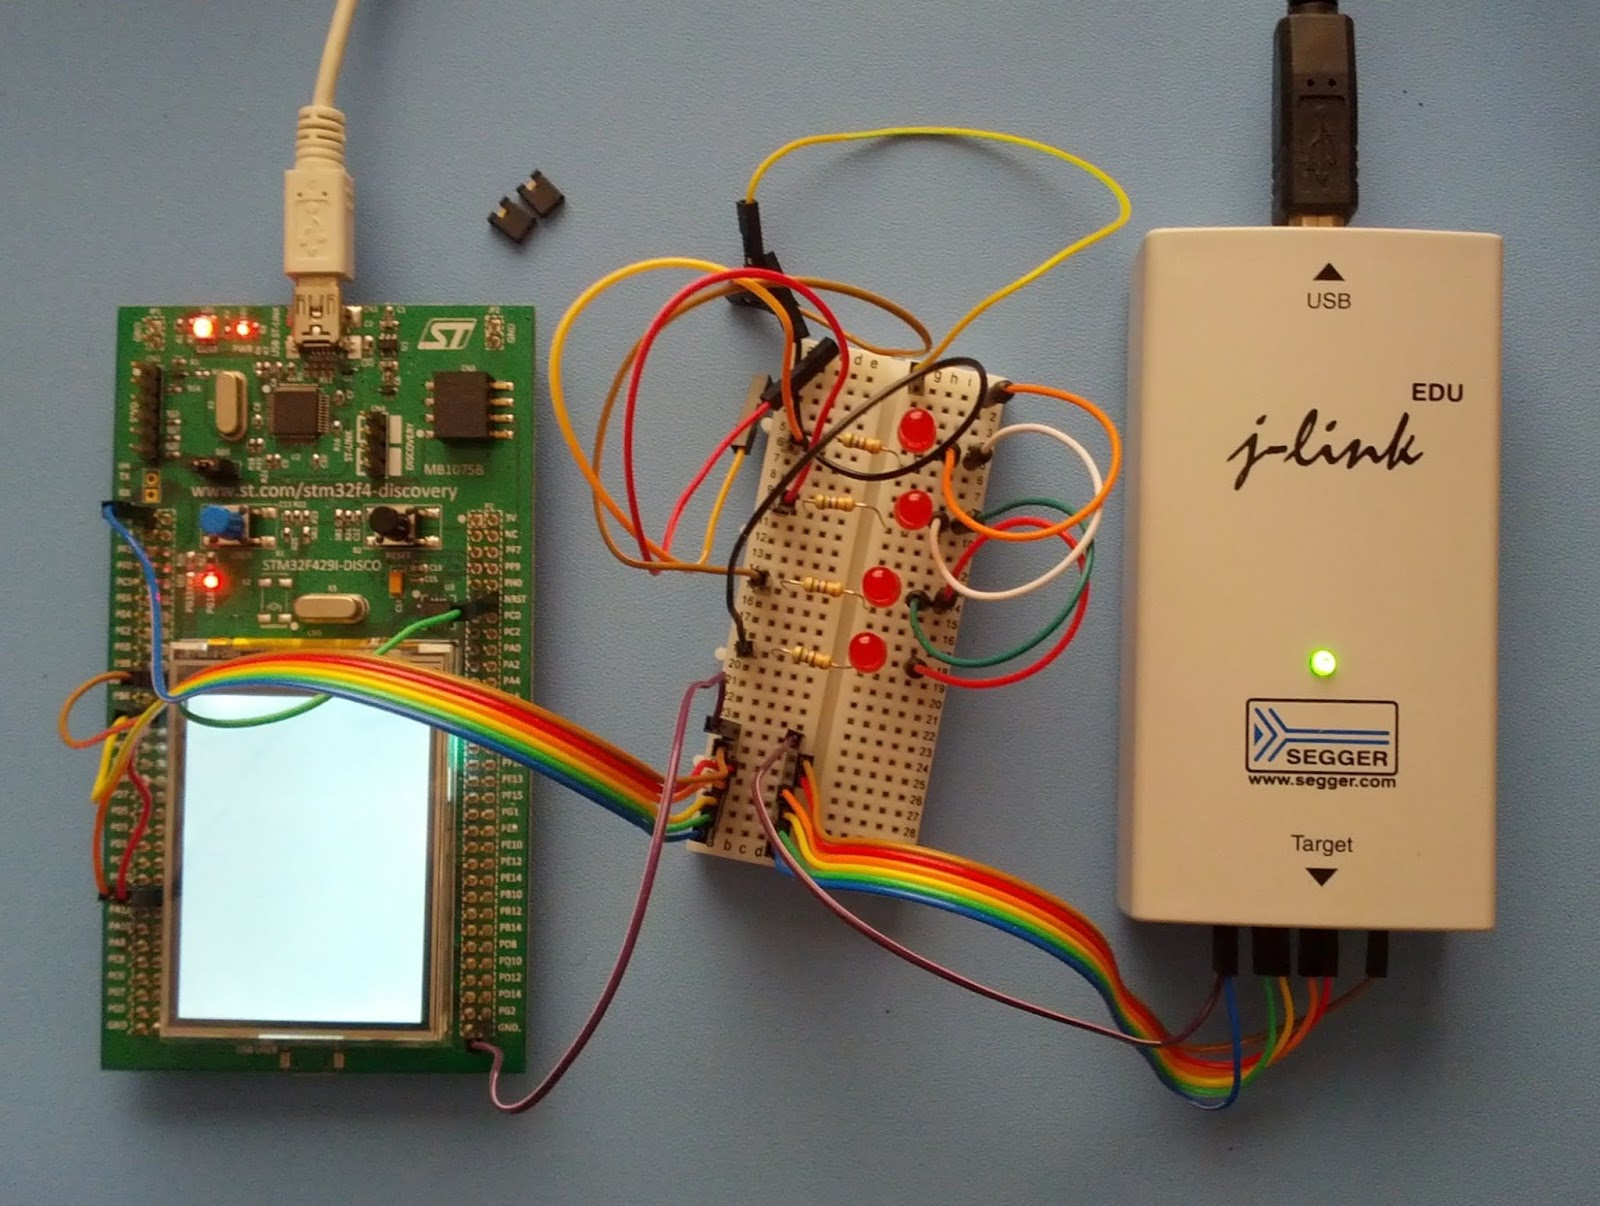 Forward in code: Recovering an STM32F4 board